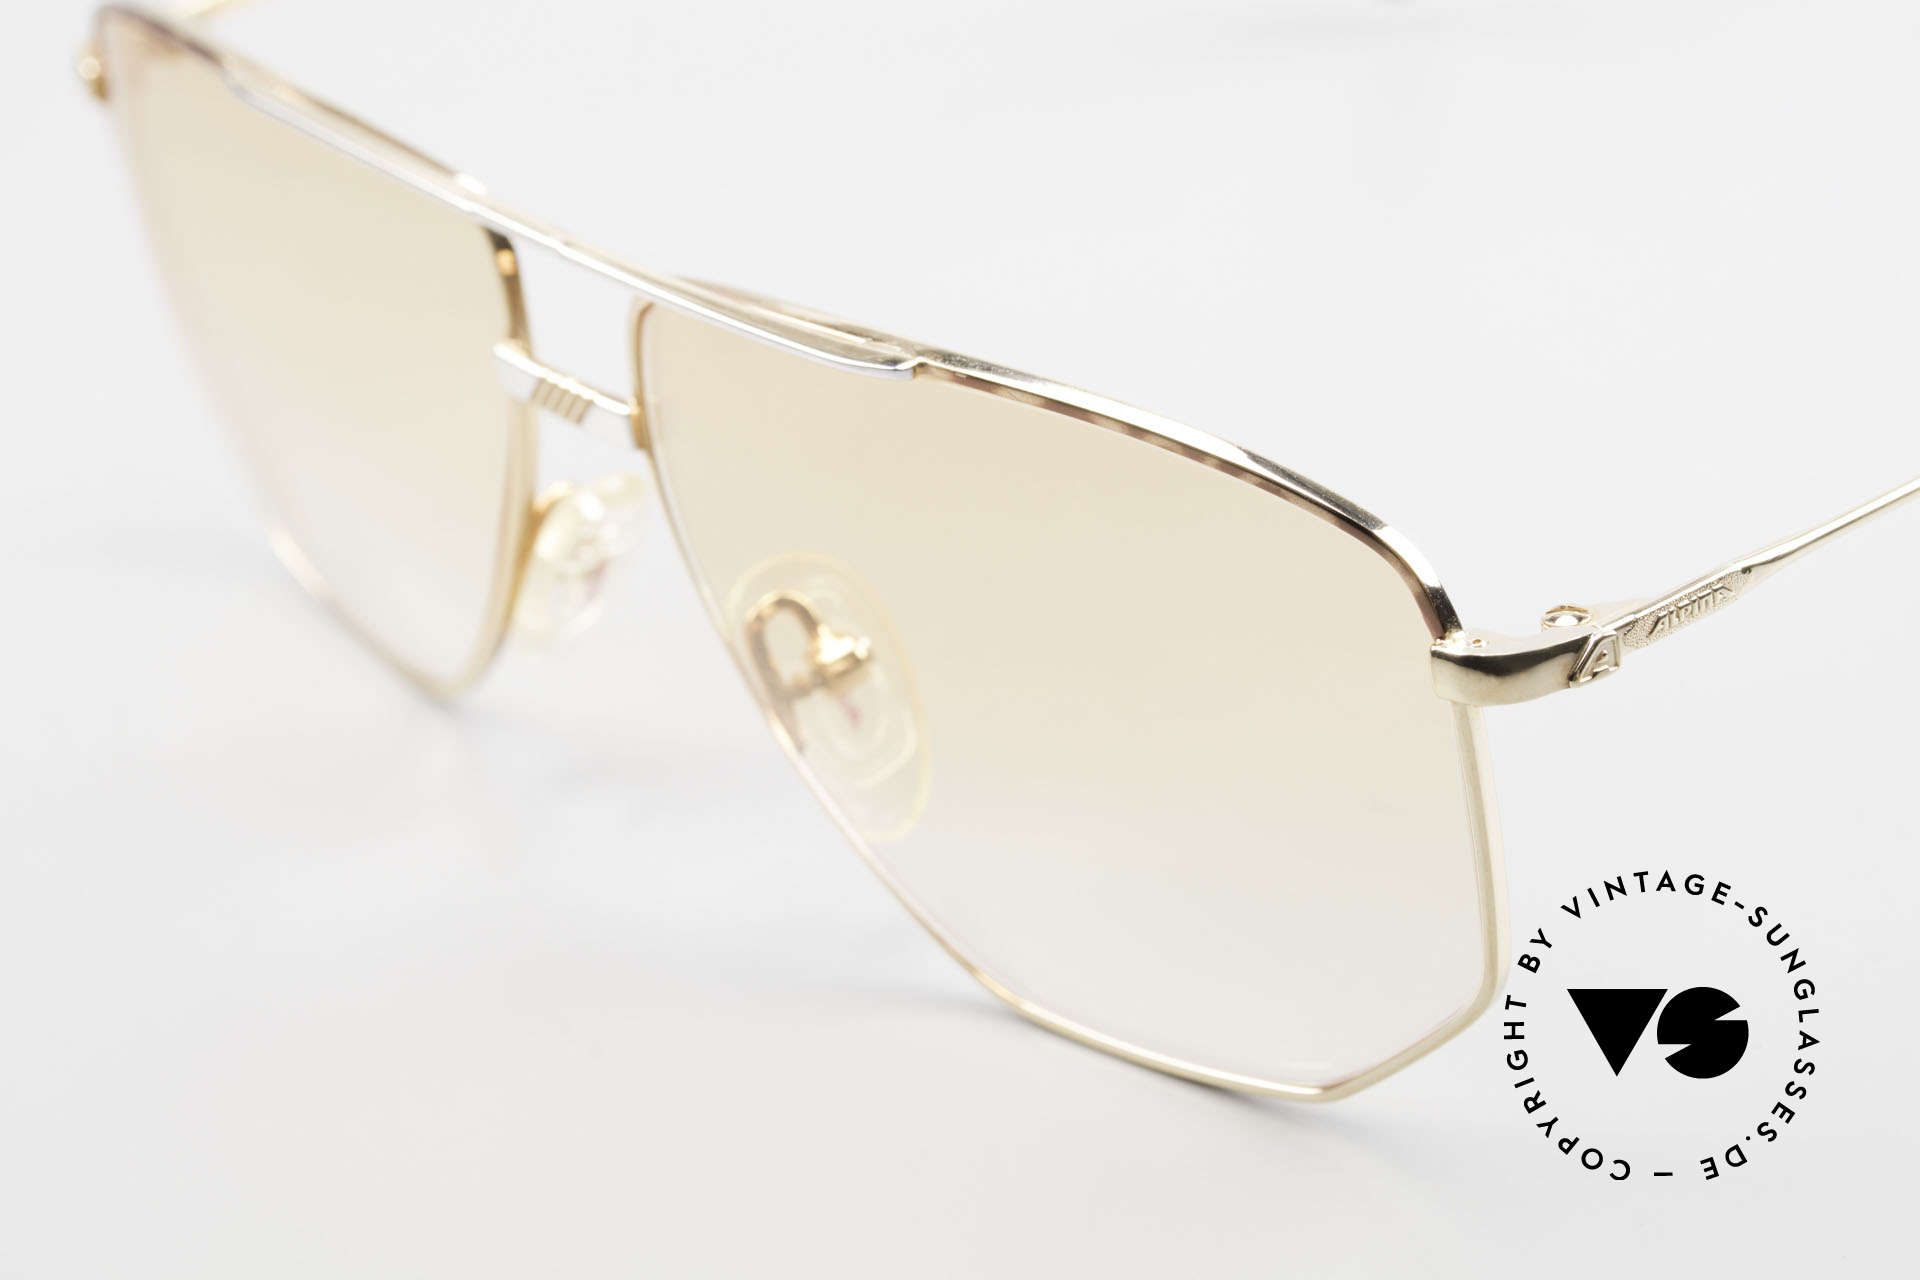 Alpina FM68 No Retro Glasses True Vintage, unworn, one of a kind (like all our vintage Alpina specs), Made for Men